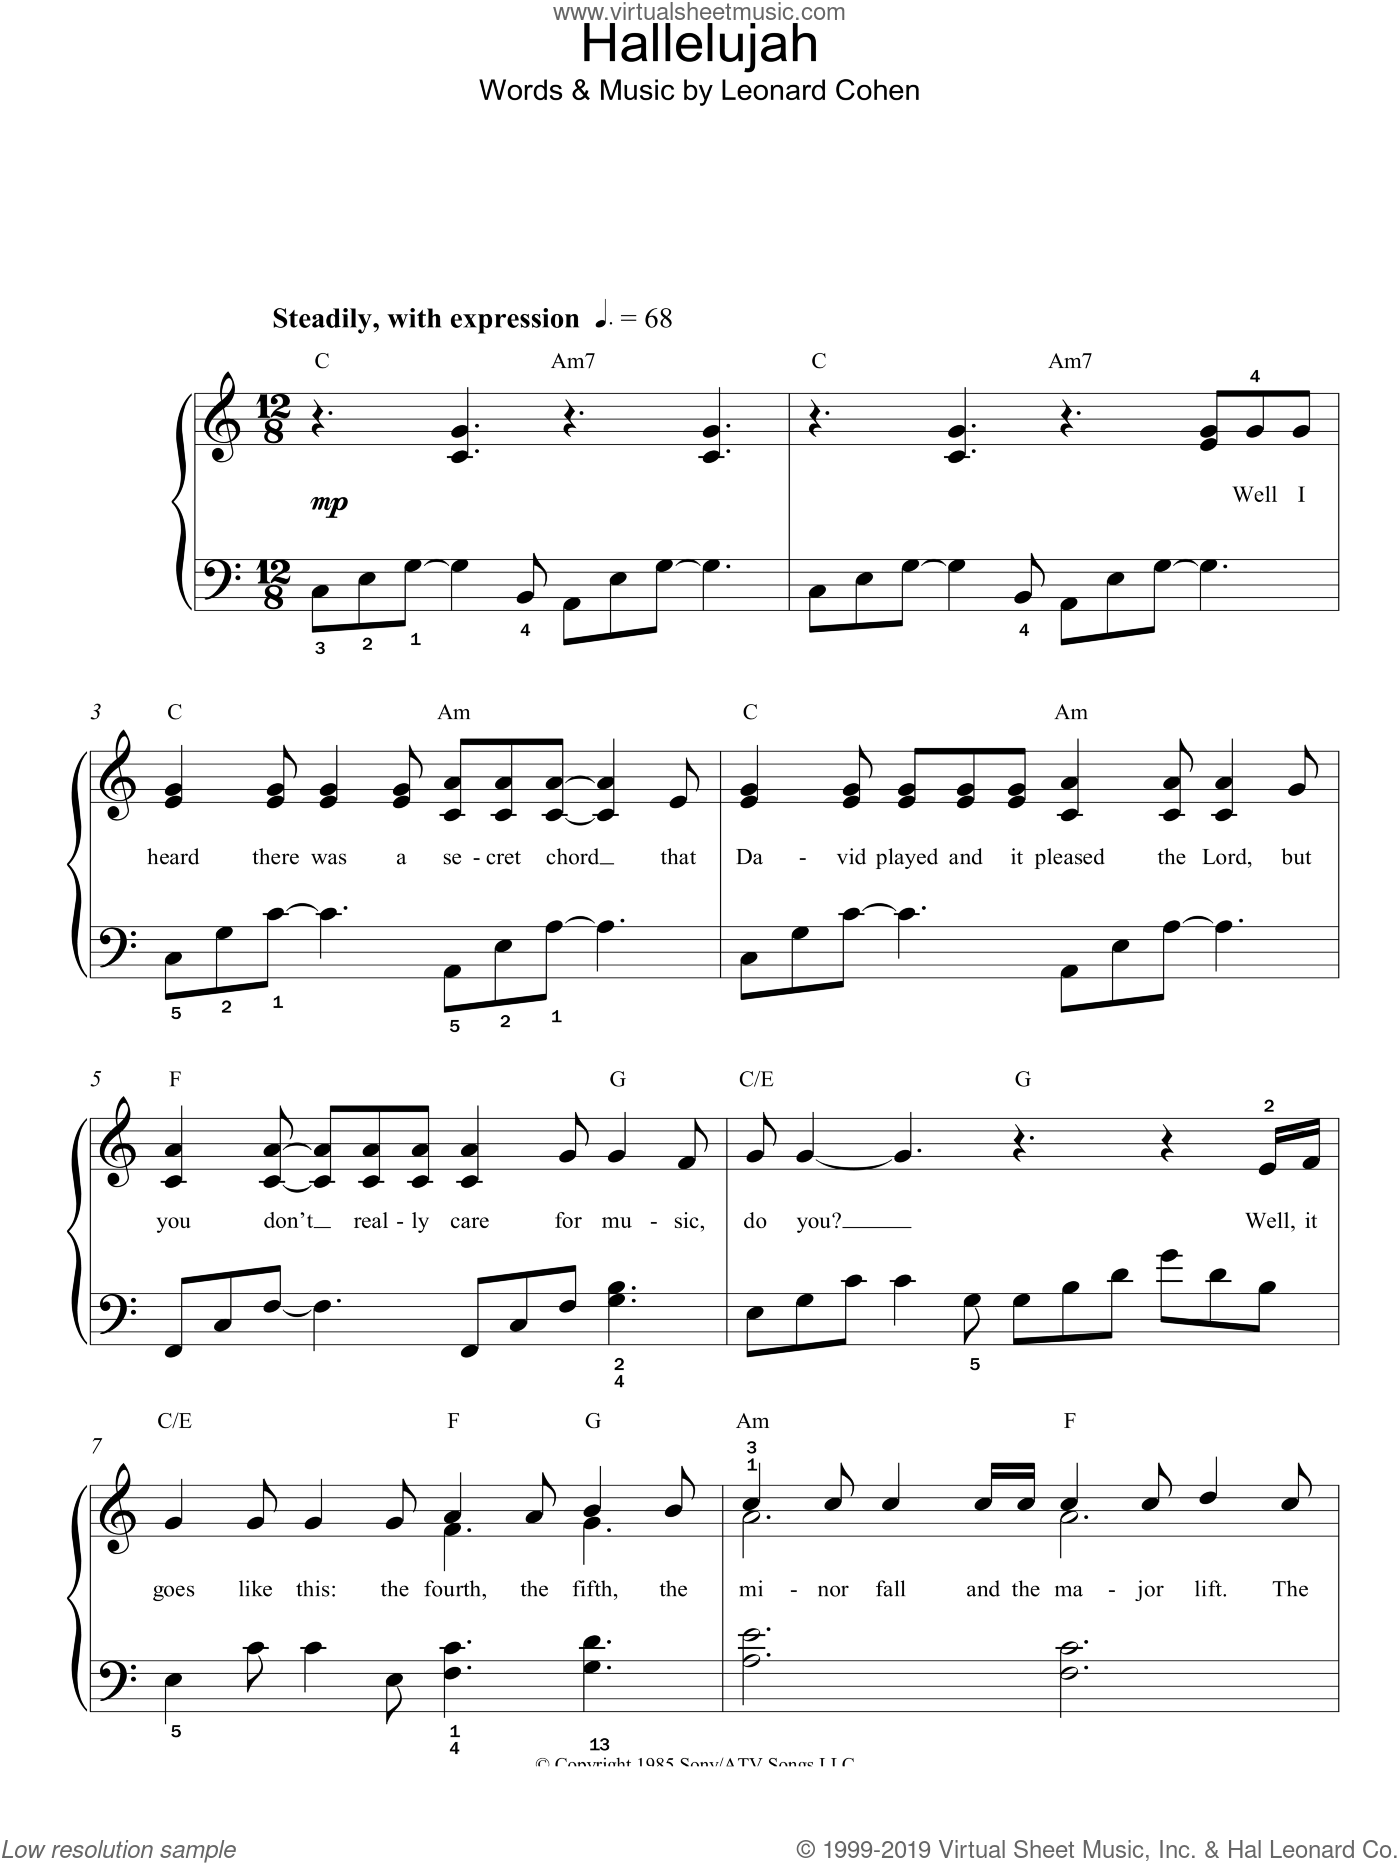 Christmas Hallelujah Sheet Music.Buckley Hallelujah Sheet Music For Piano Solo Pdf Interactive